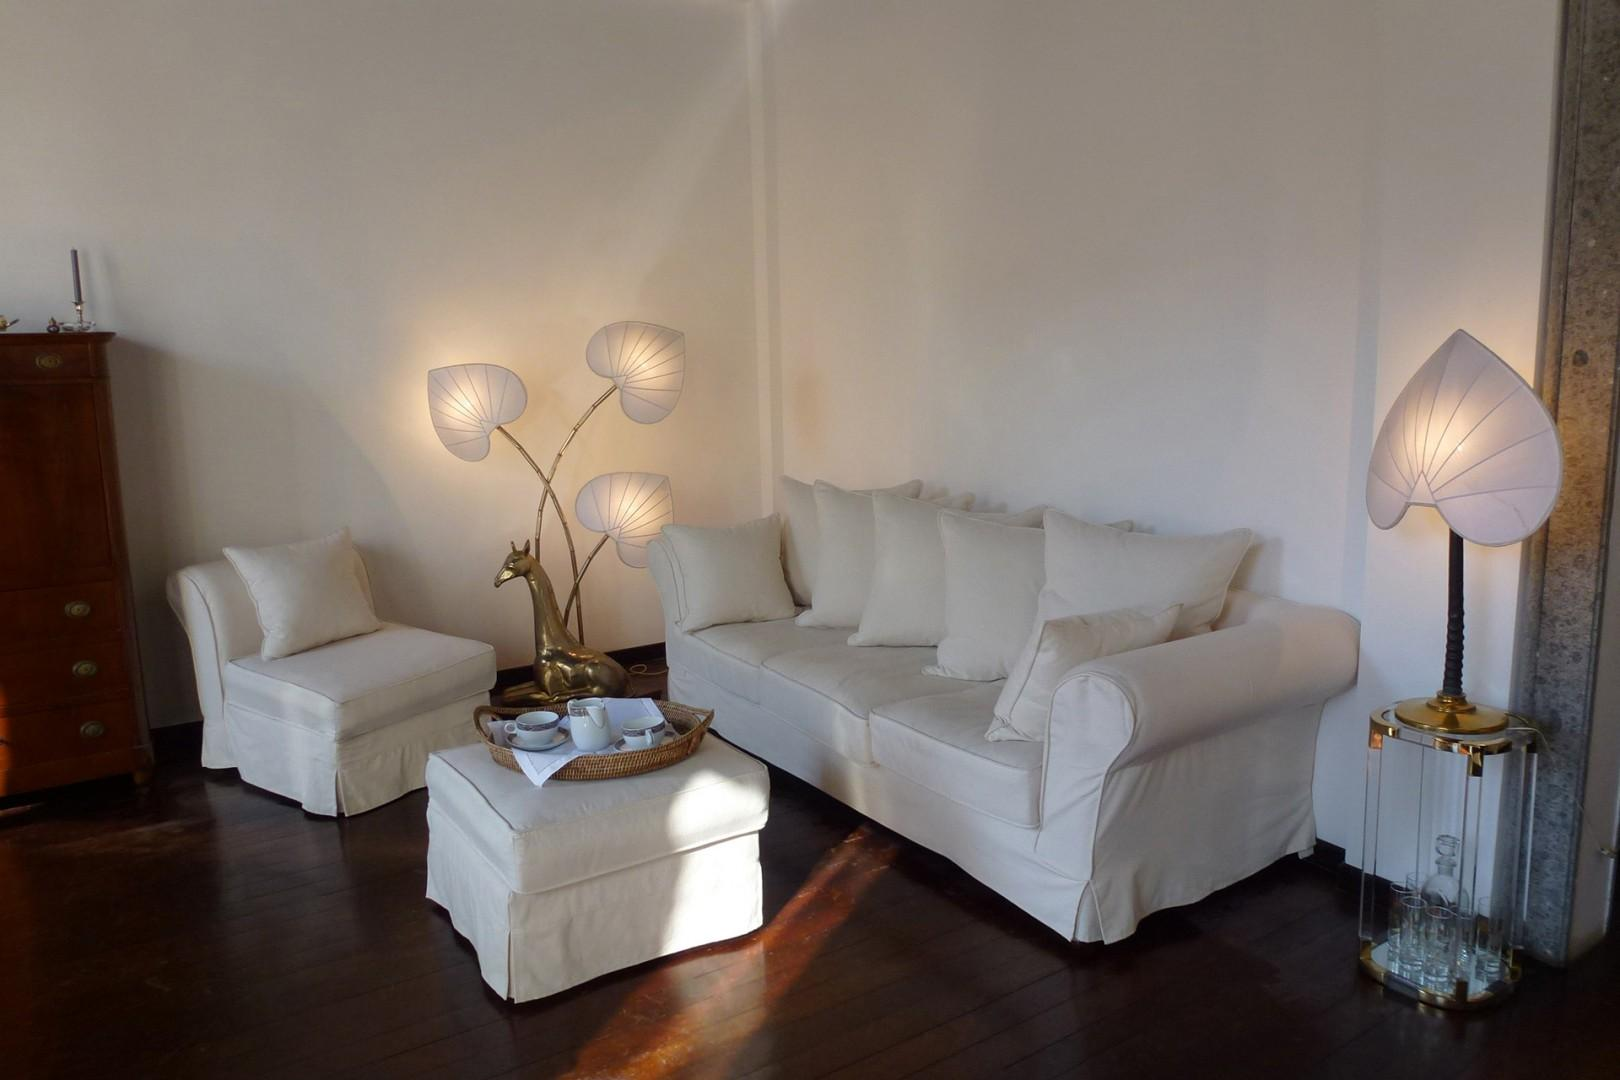 Comfortable seating in the living room invites you to spend time relaxing